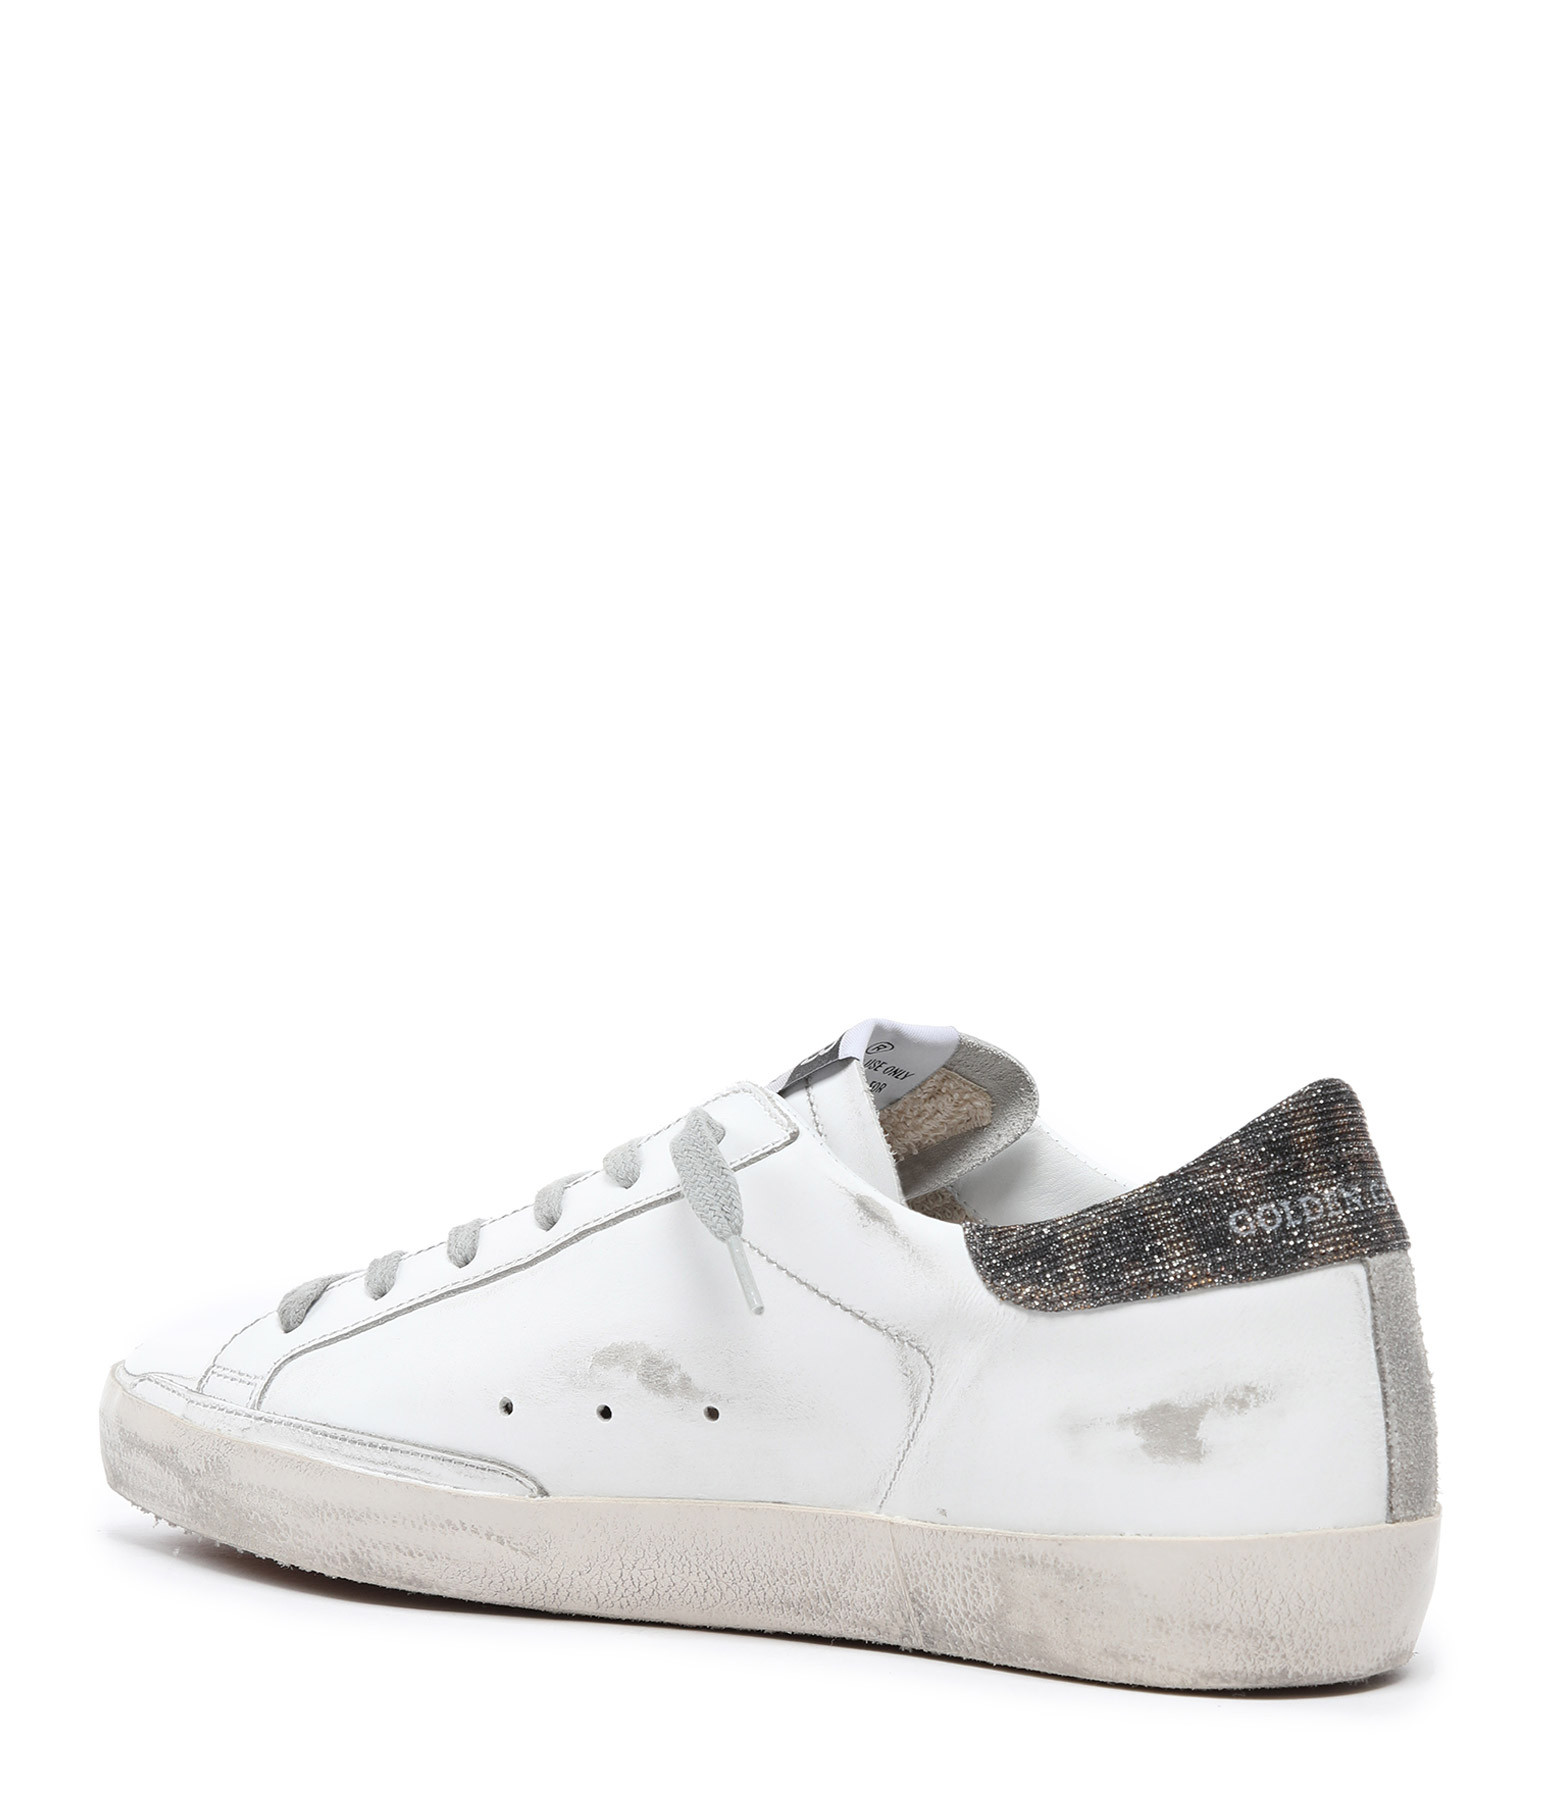 GOLDEN GOOSE - Baskets Superstar Cuir Suédé Blanc Doré